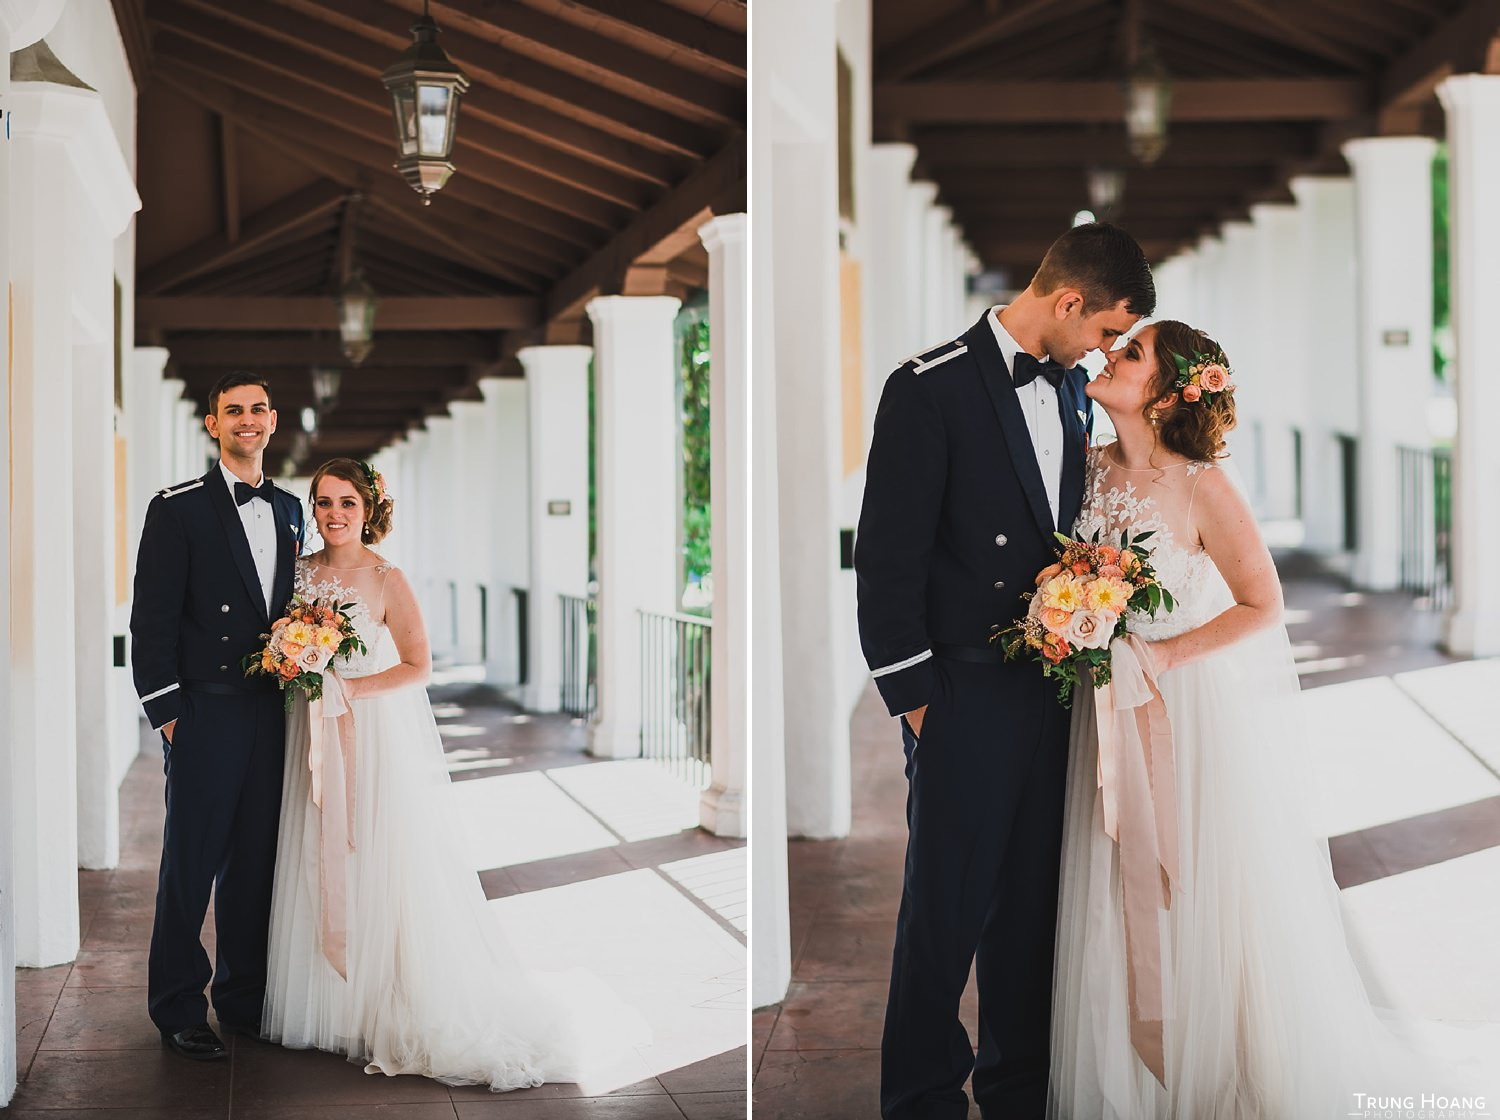 Wedding Photography at Saint Mary's College